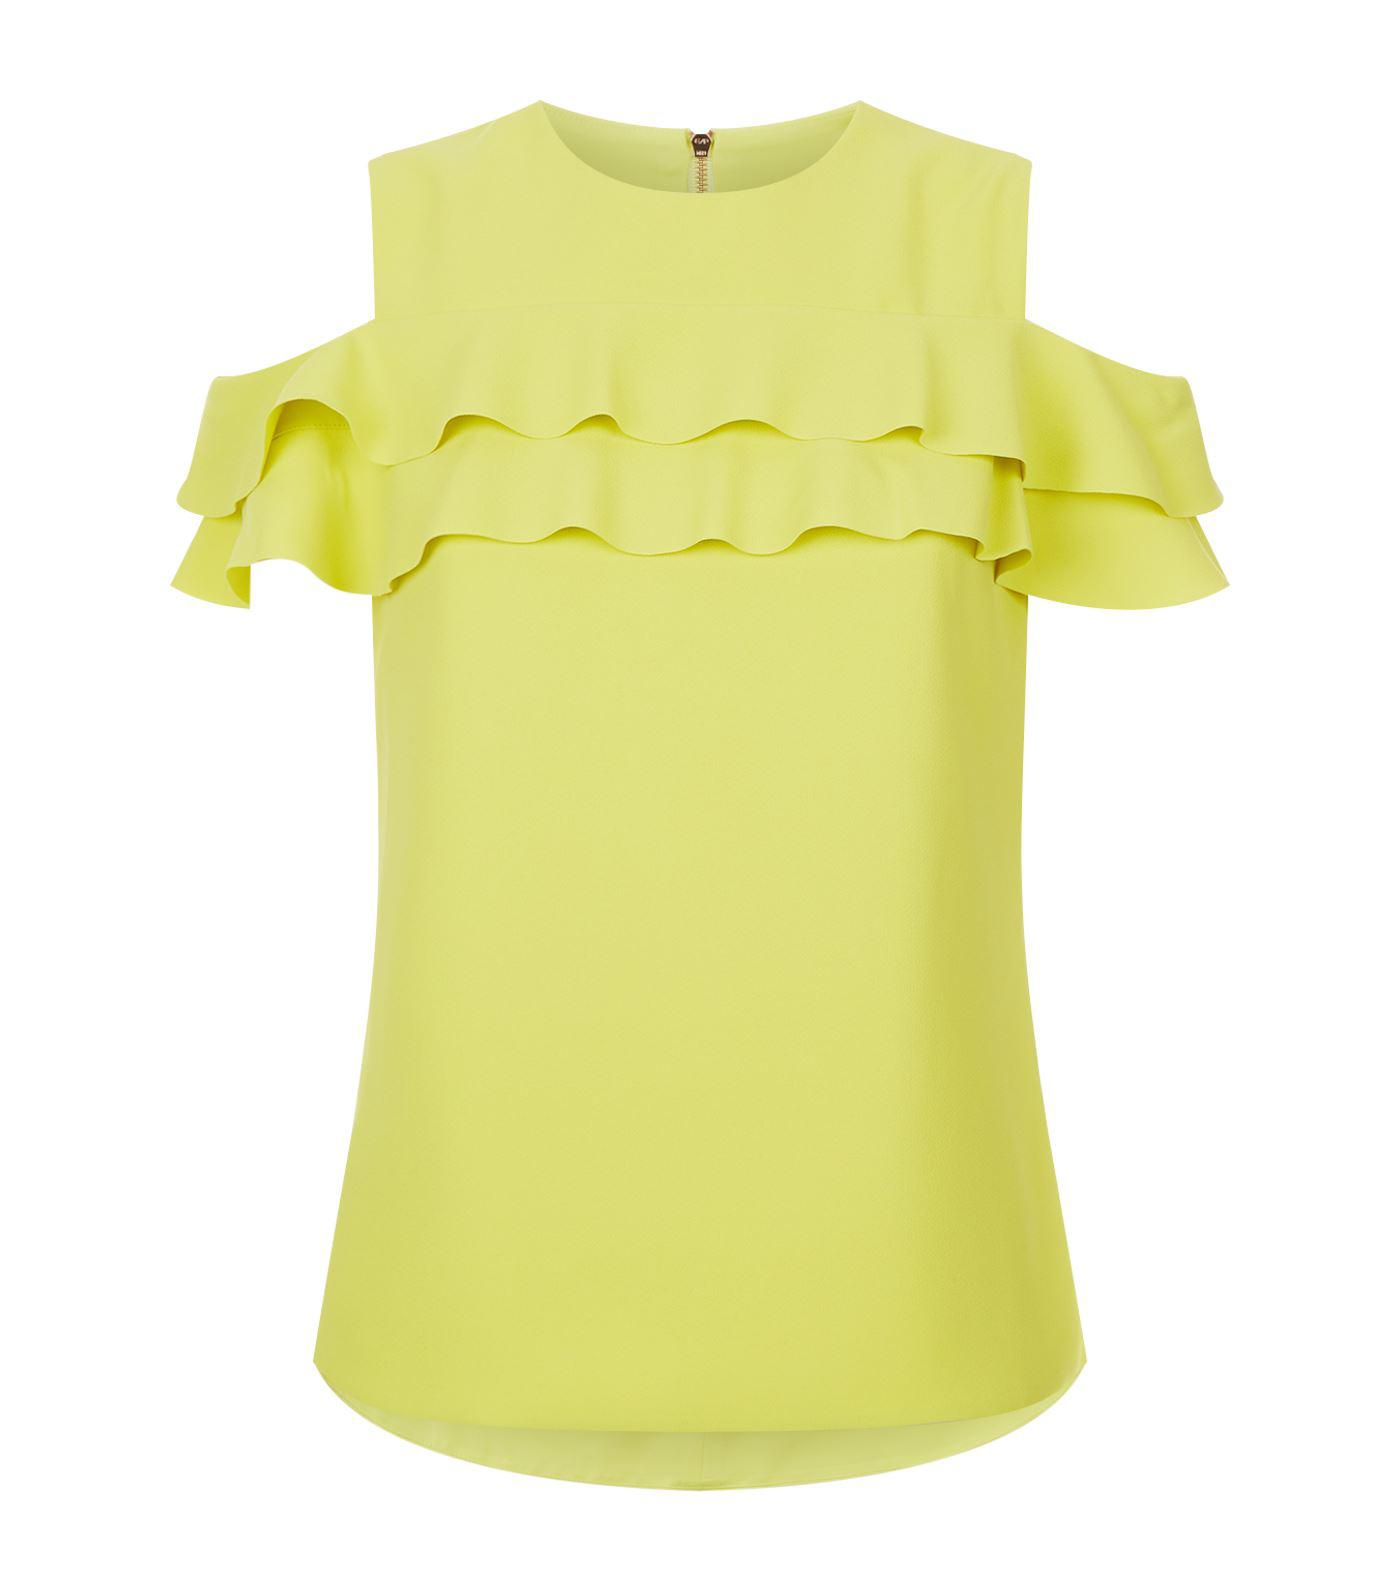 d1bde8de09720 Ted Baker Hopee Cold Shoulder Frill Top in Green - Lyst